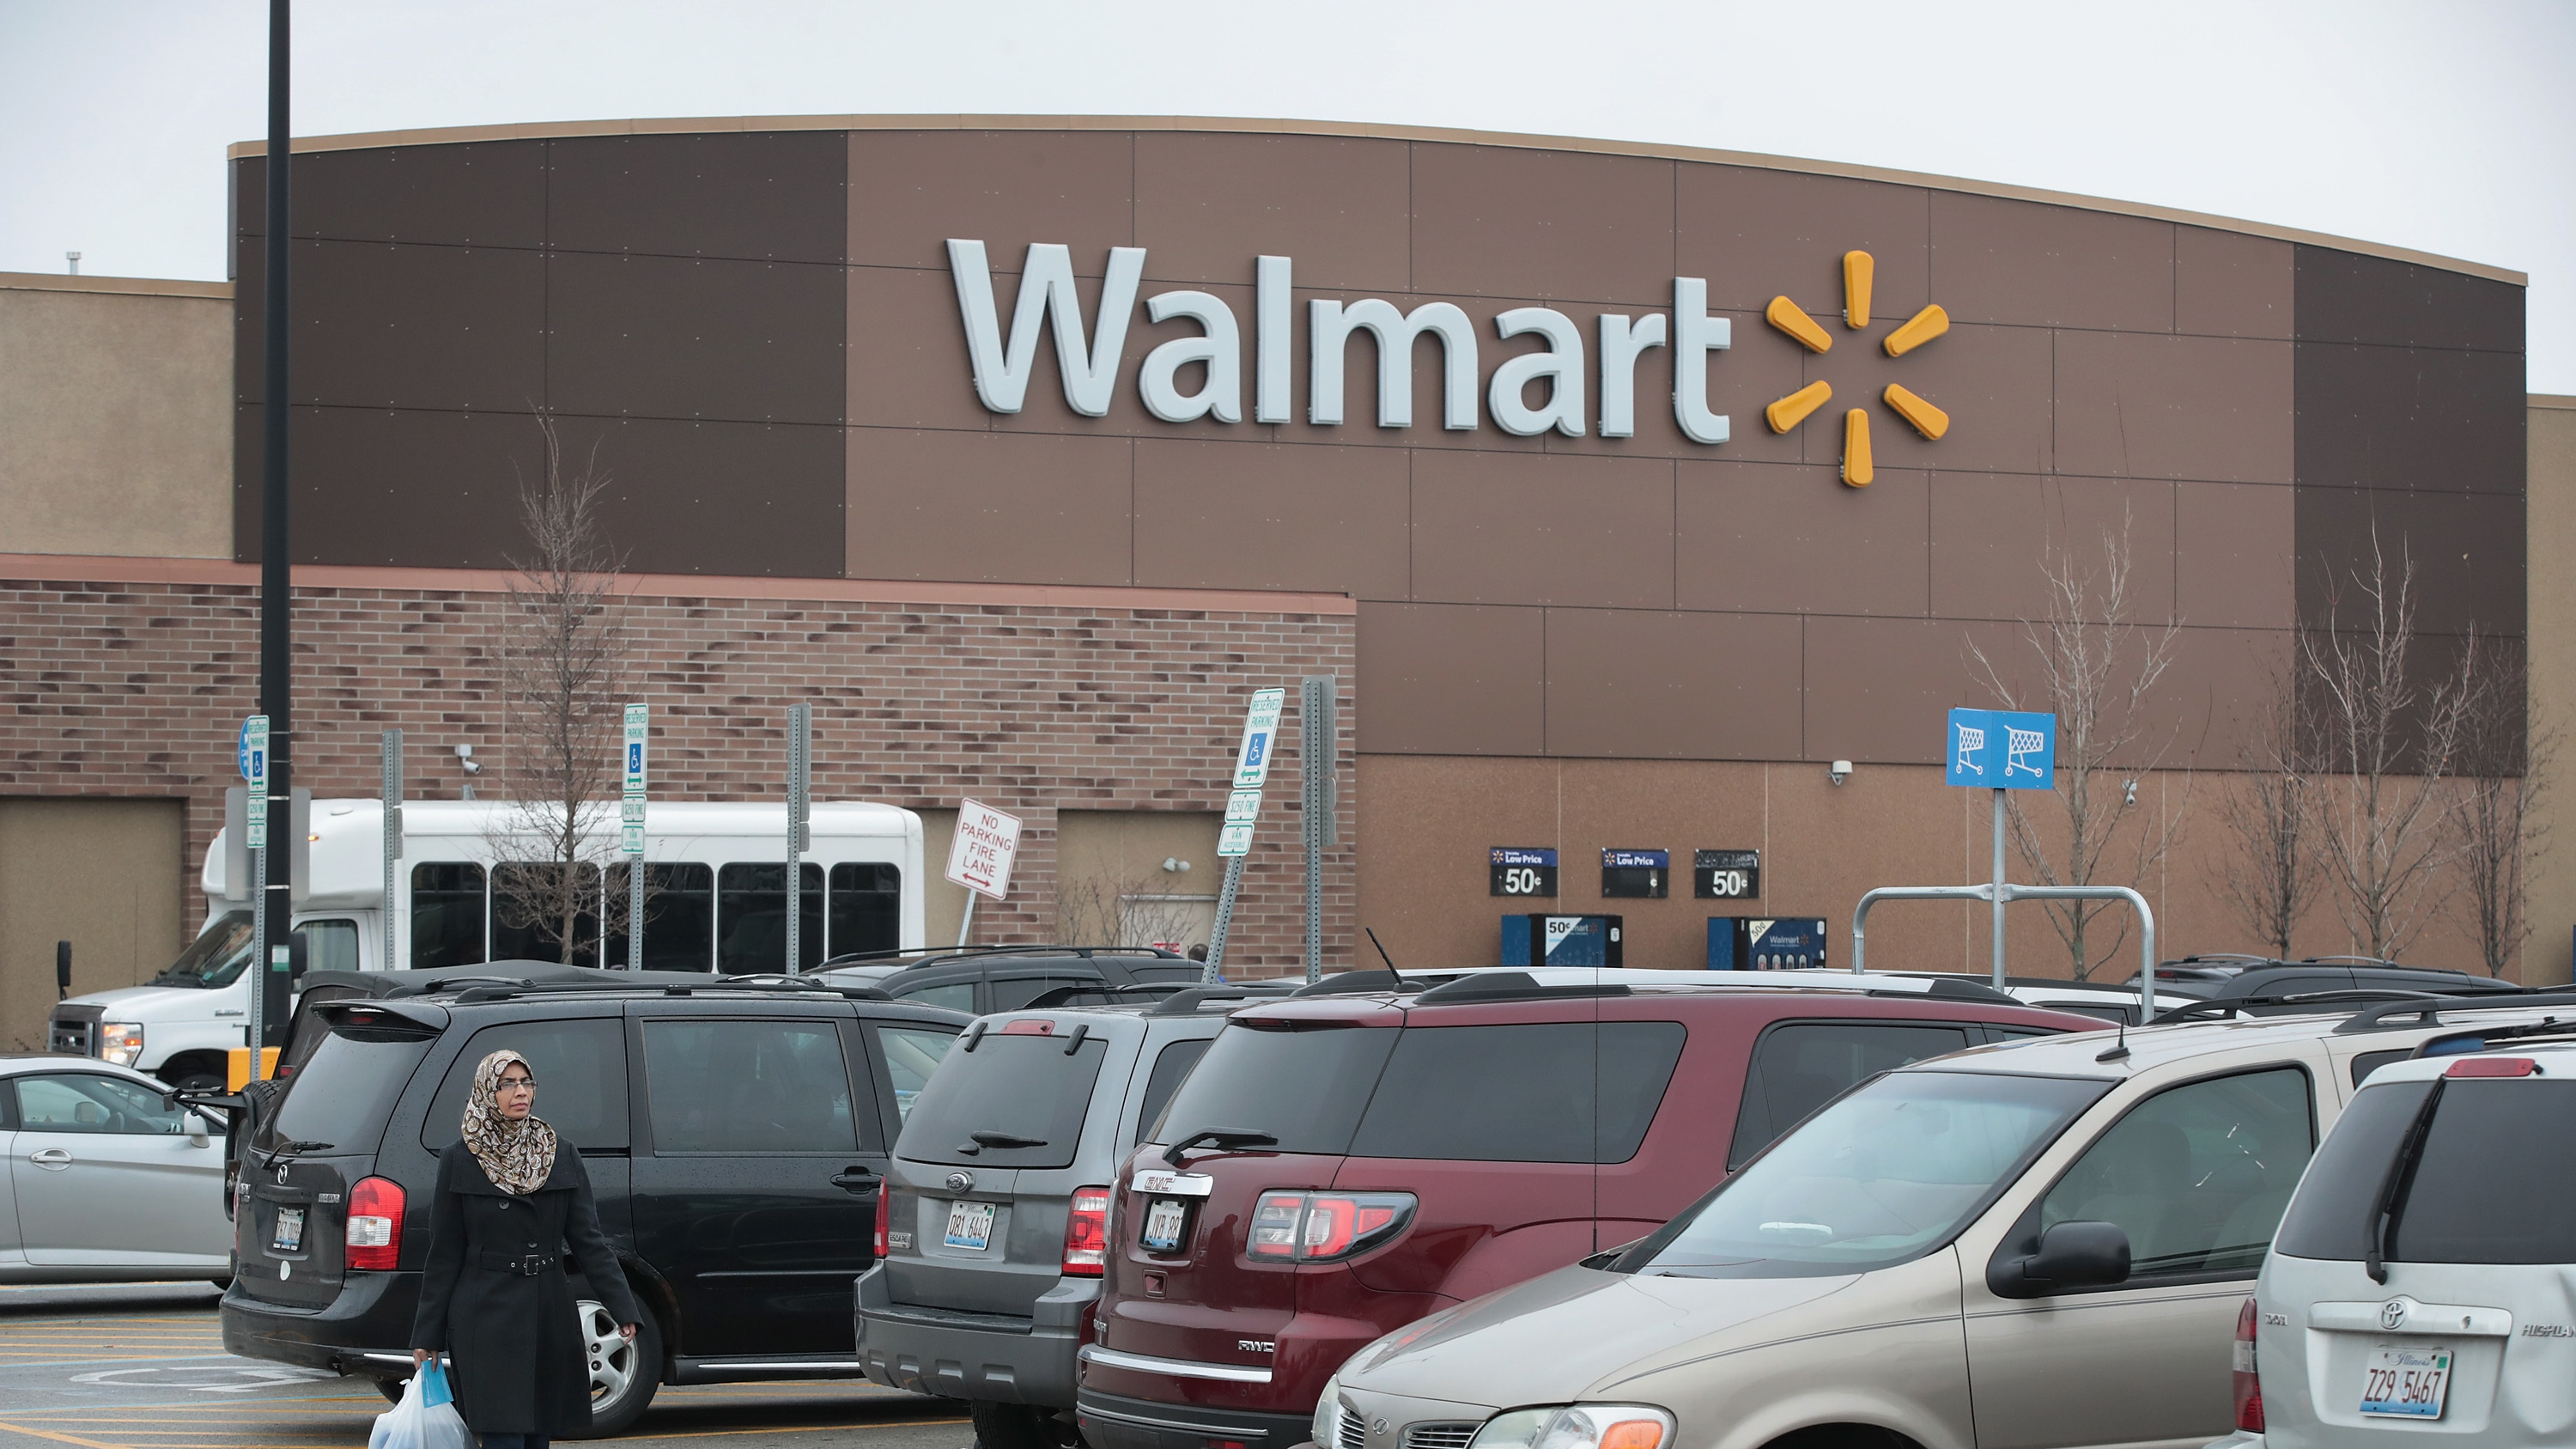 Walmart to raise its starting wage to $11 an hour